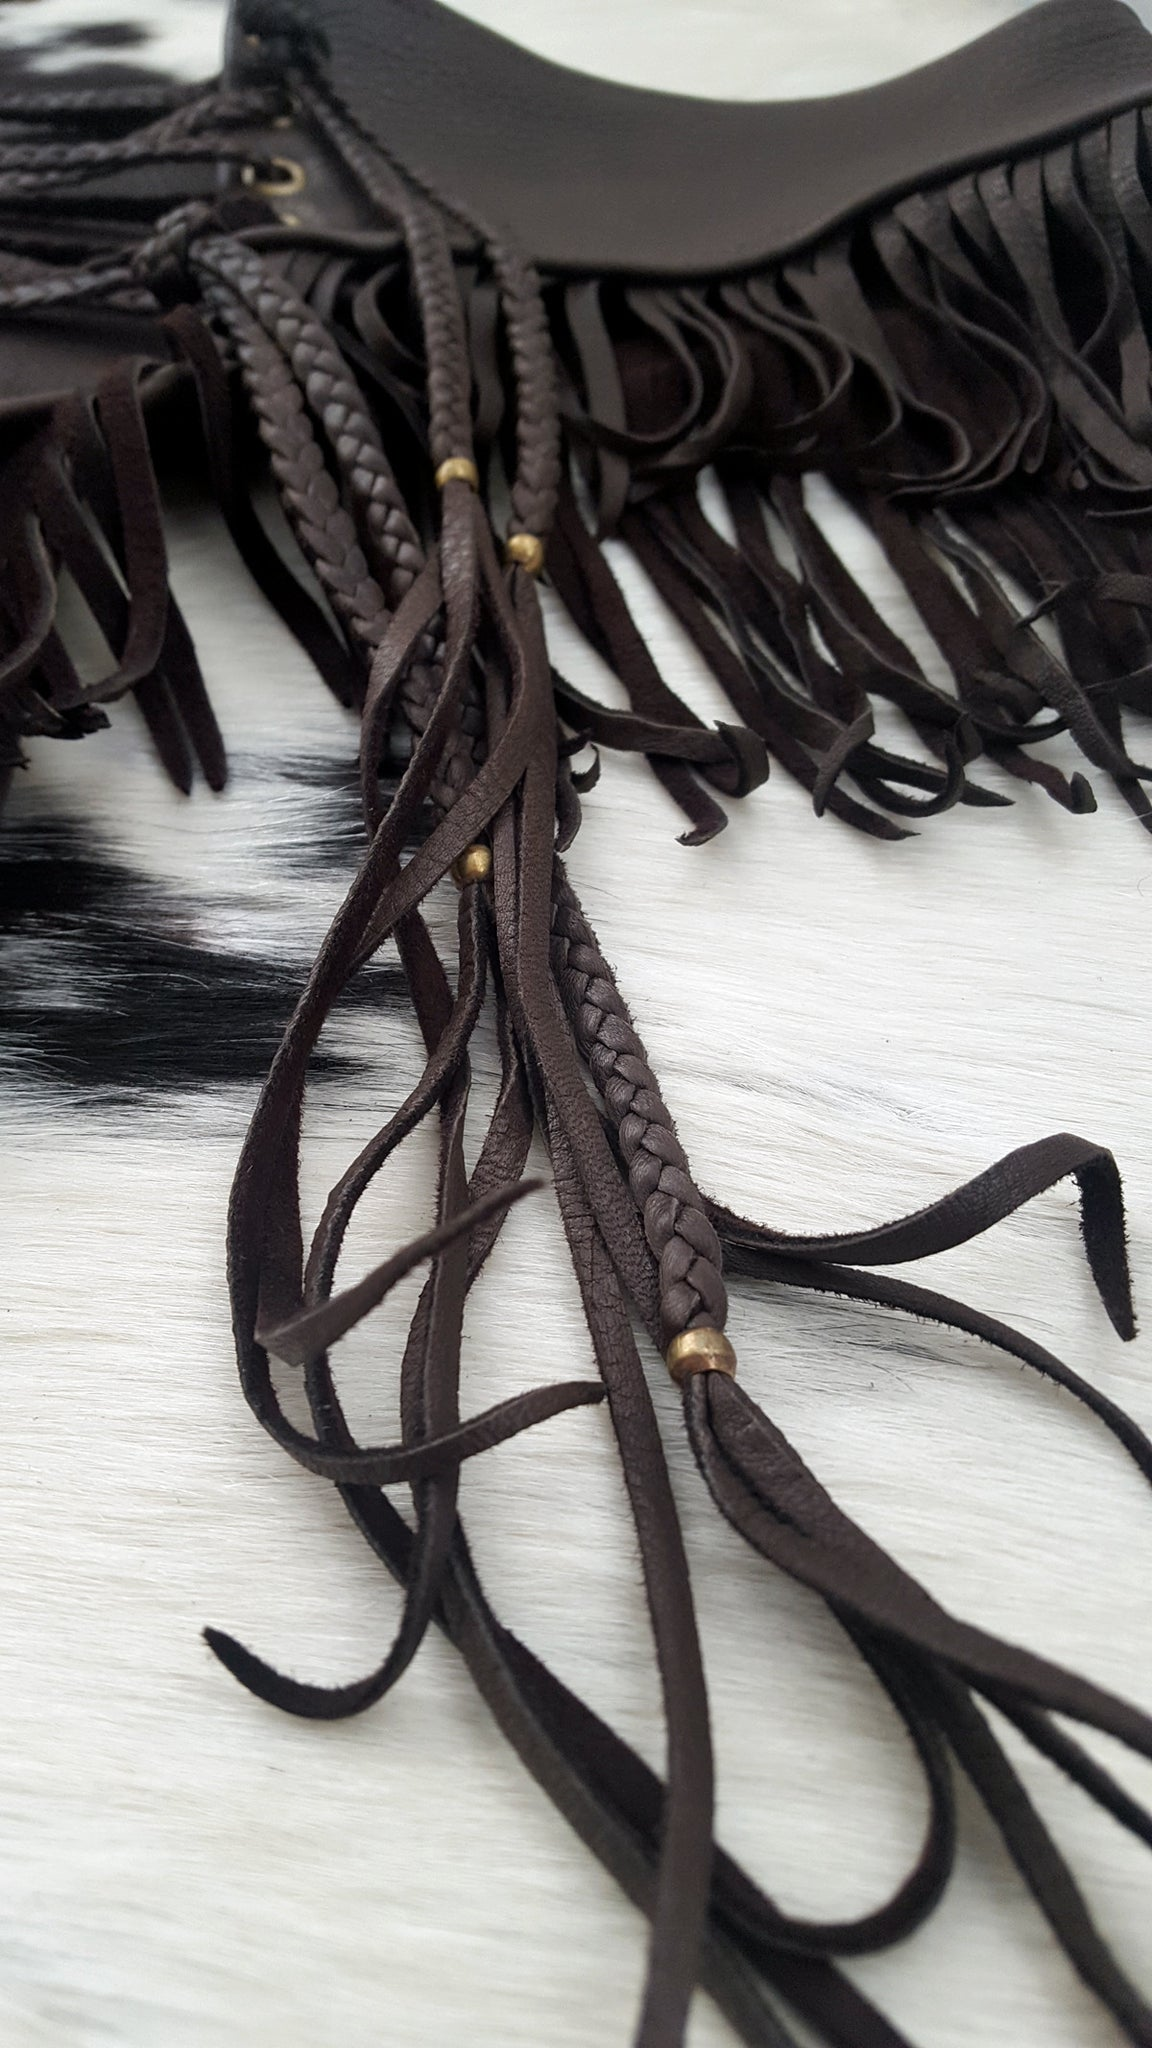 close up image of deerskin leather booty shorts, booty shorts braided laced ties and fringe